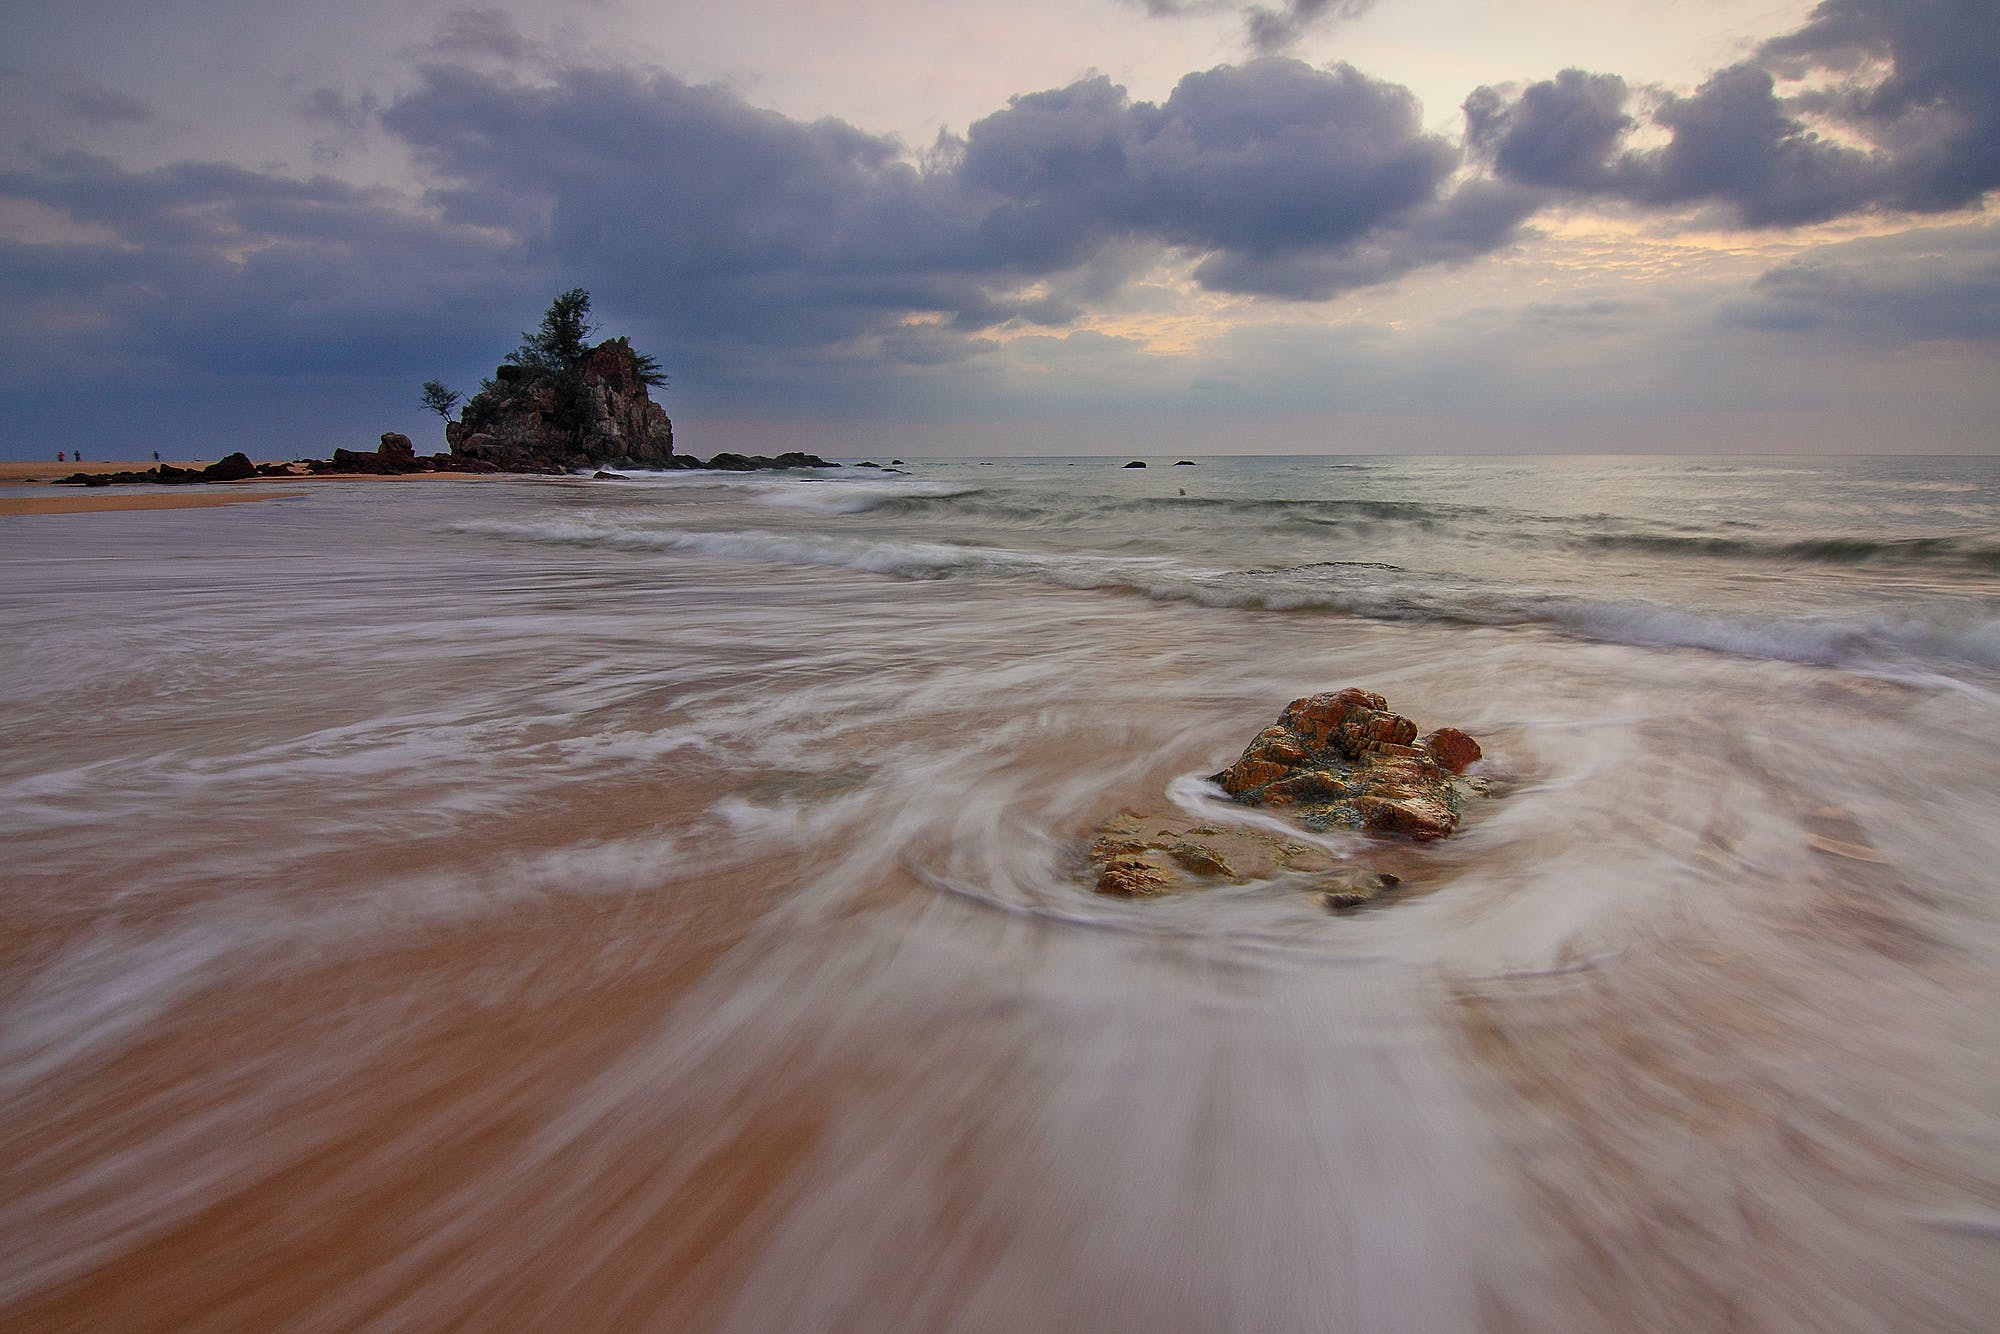 Timelapse Photography of Rock Formation on Seashore